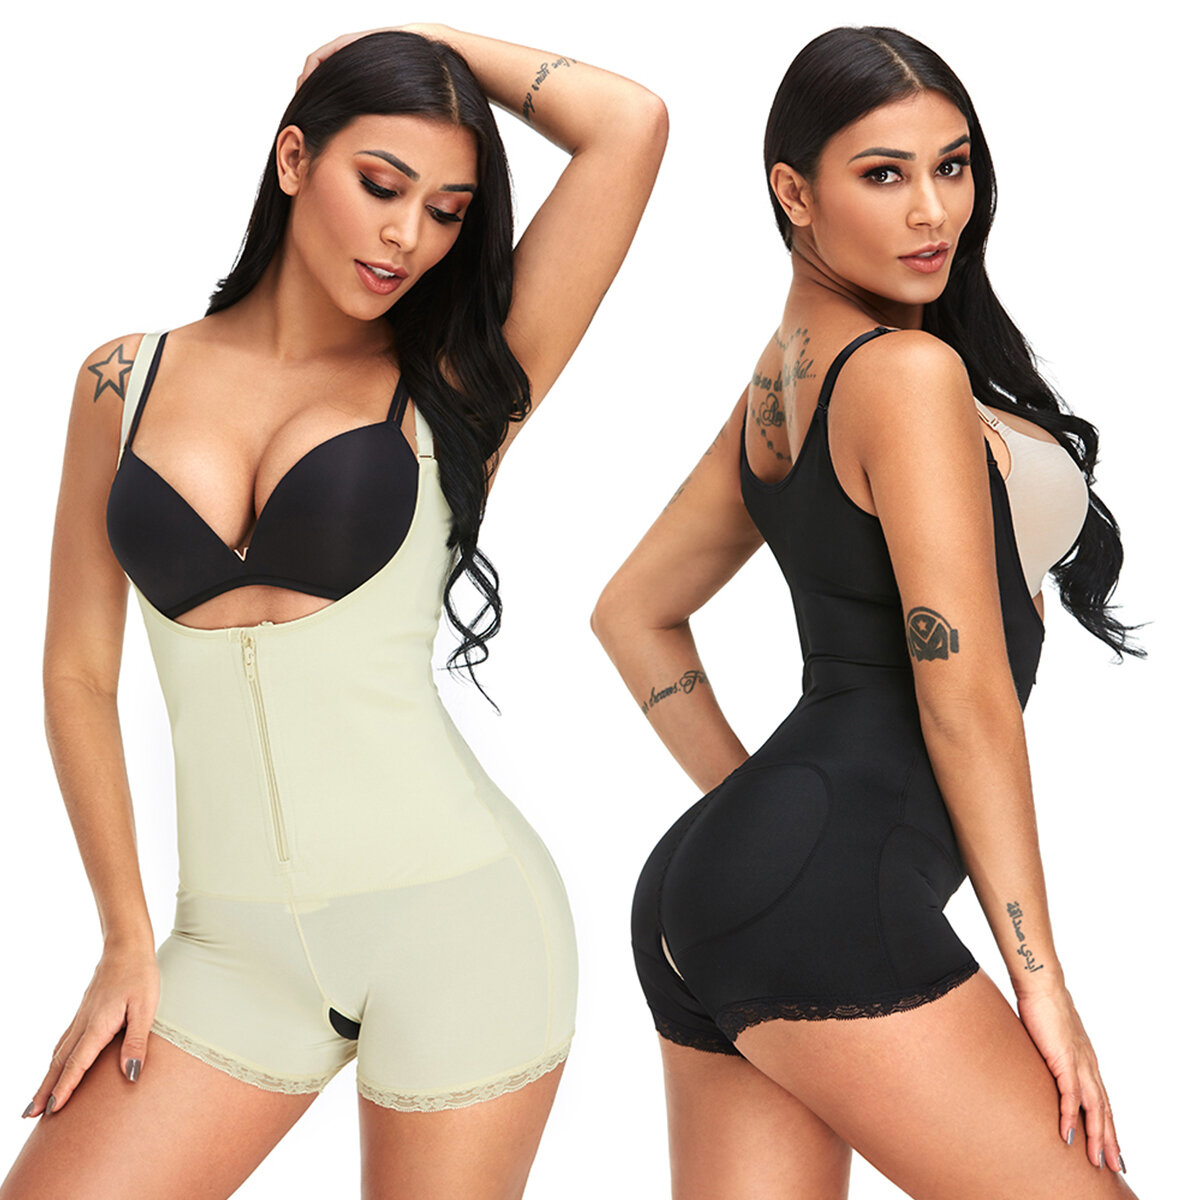 72cb726d8 Women Body-Shaping Clothes Girdles for Belly Reducing Shapewear Firm  Control Abdomen Waist Support Trainer Slimming Girdle Belt - Black S COD